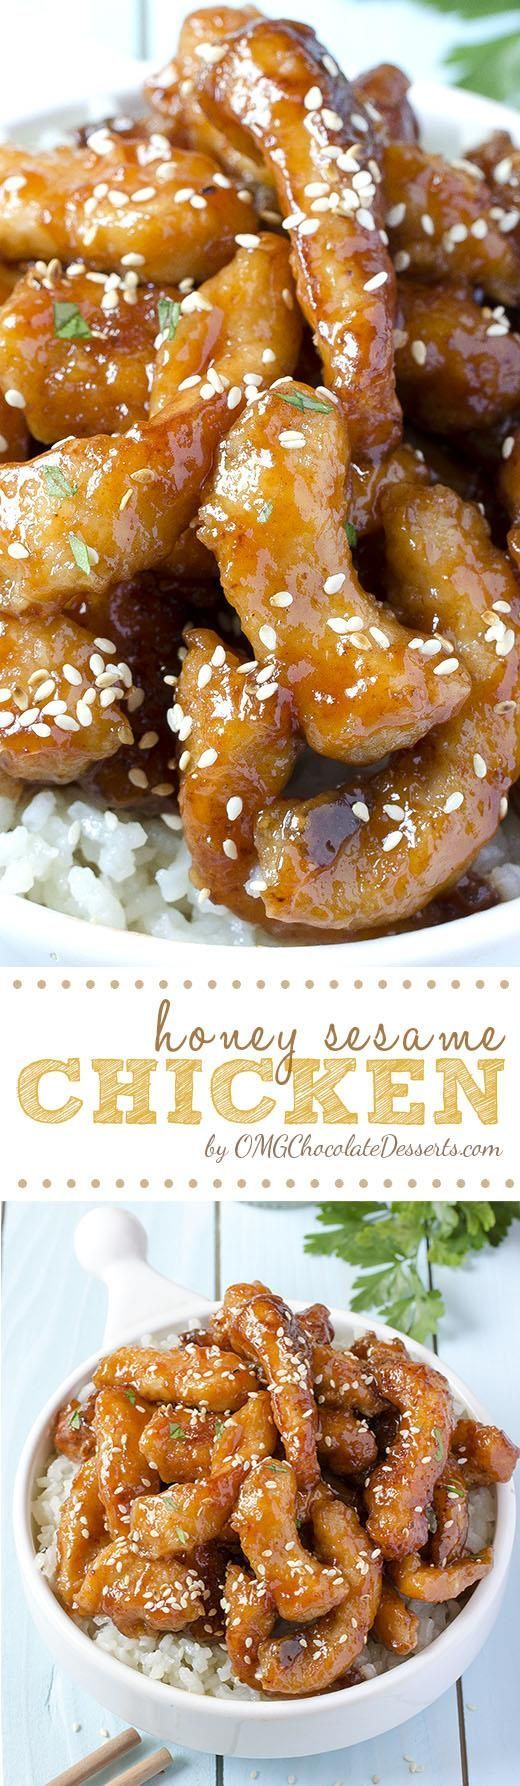 Sweets and savories recipes with chicken